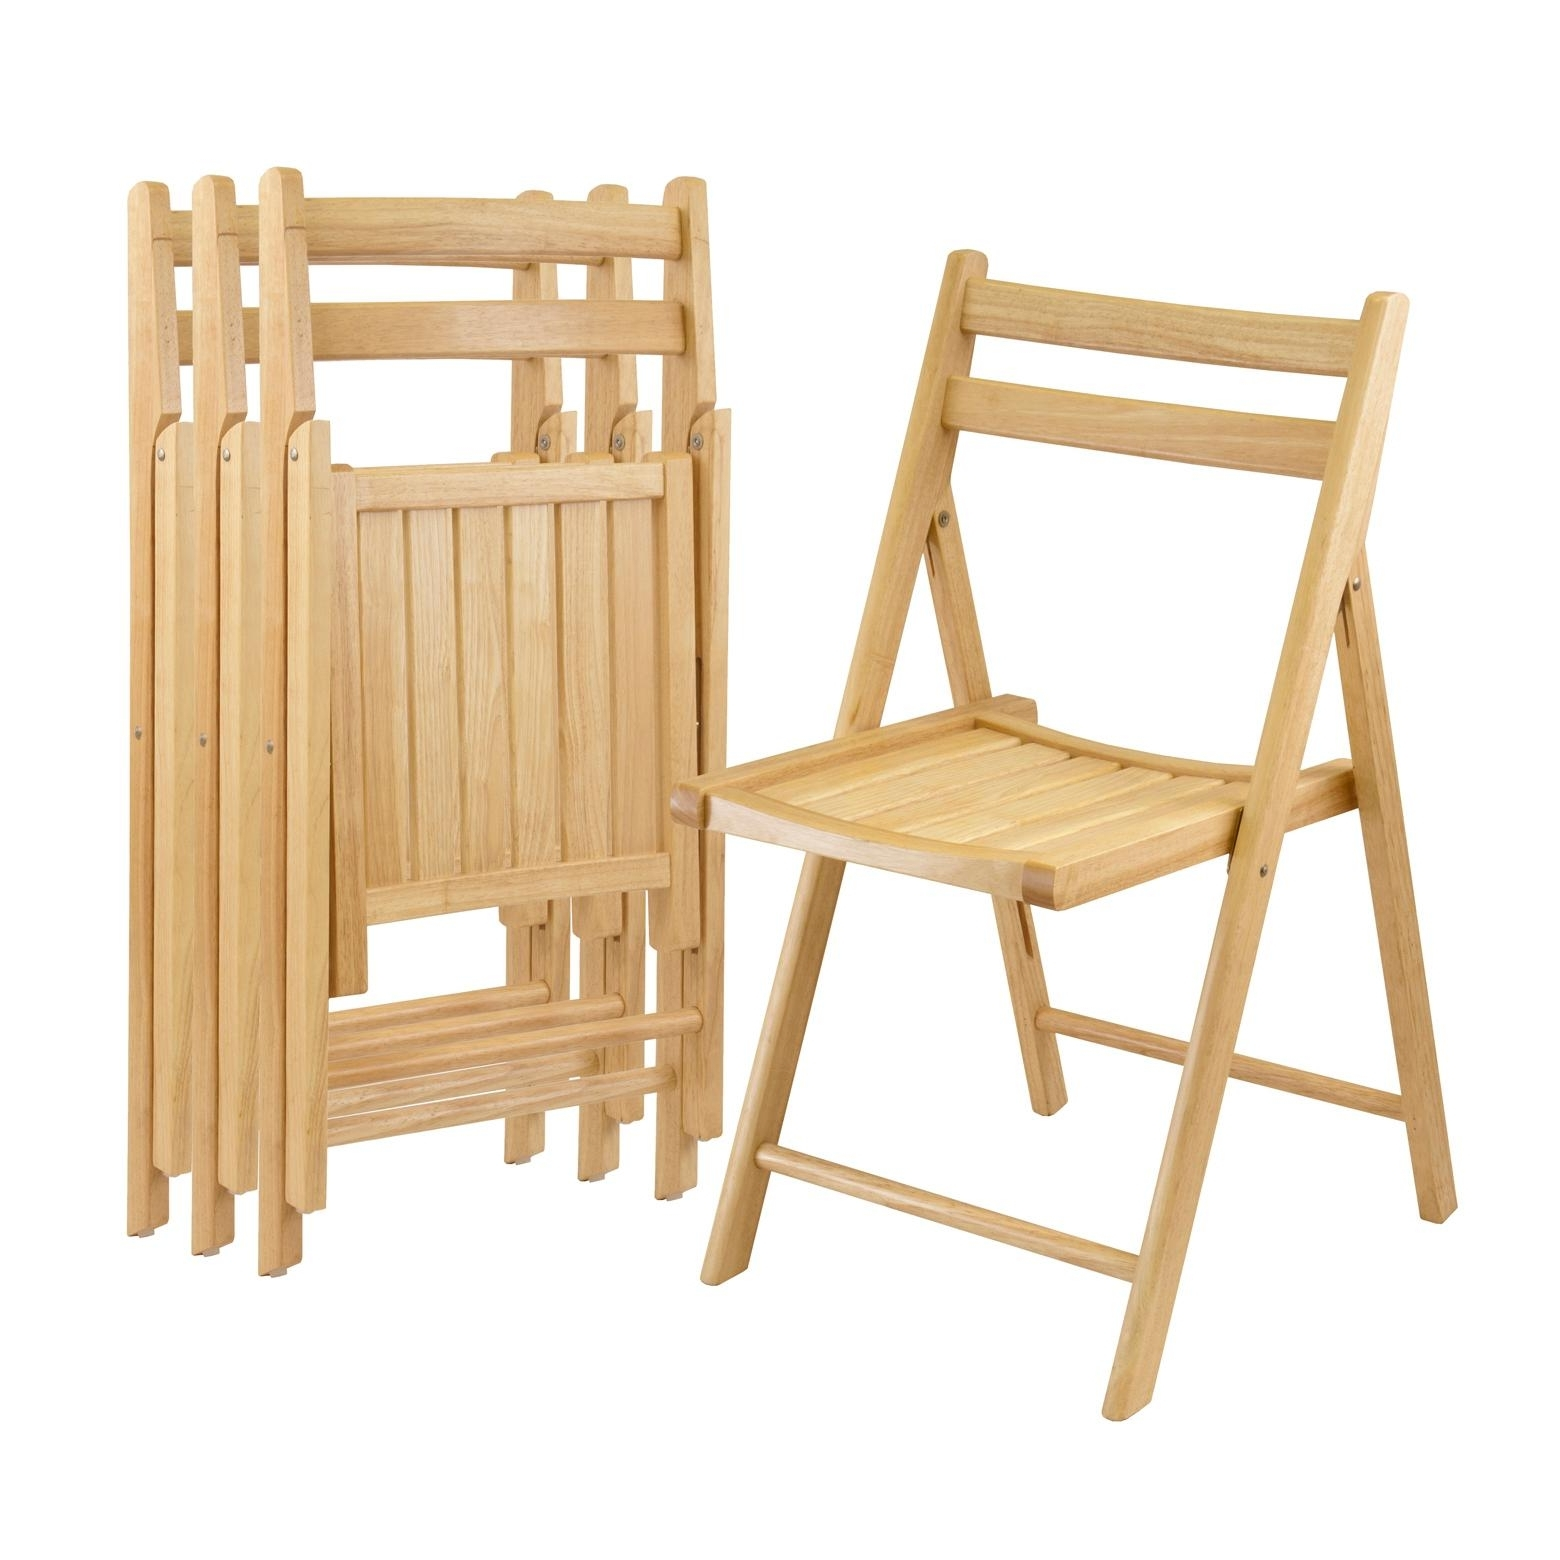 2018 Wood Folding Dining Tables Regarding Amazon: Winsome Wood Folding Chairs, Natural Finish, Set Of  (View 2 of 25)